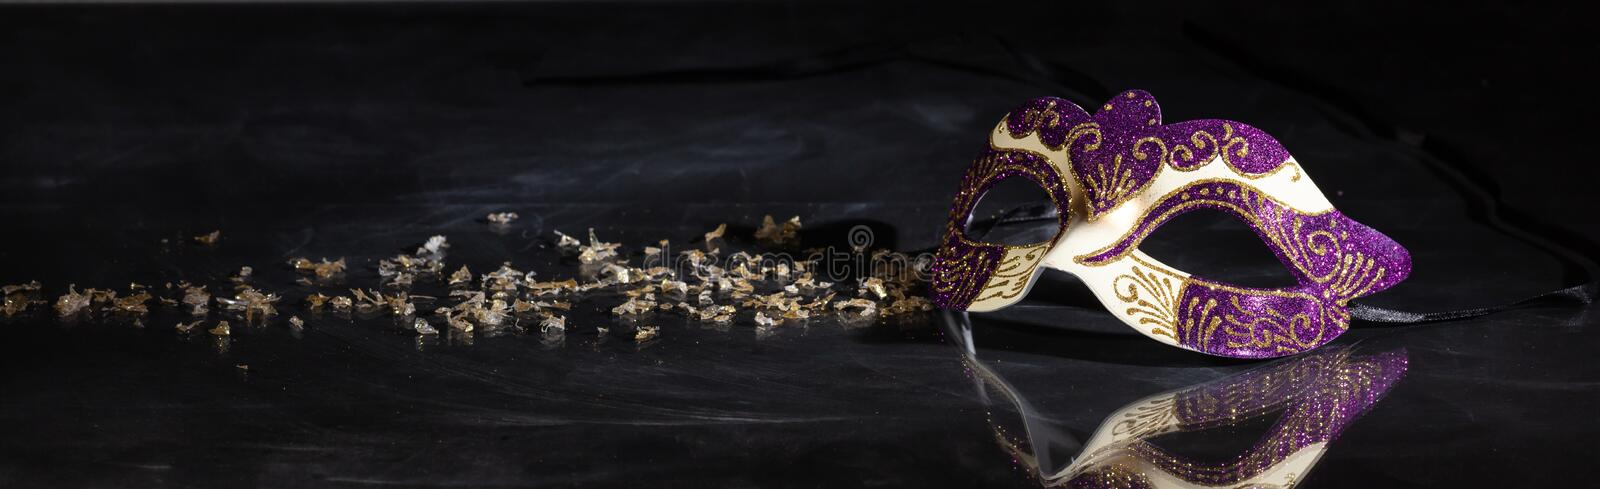 Carnival mask on black background, reflections, banner. Carnival time. Venetian mask purple and gold color on black background, reflections, banner royalty free stock images